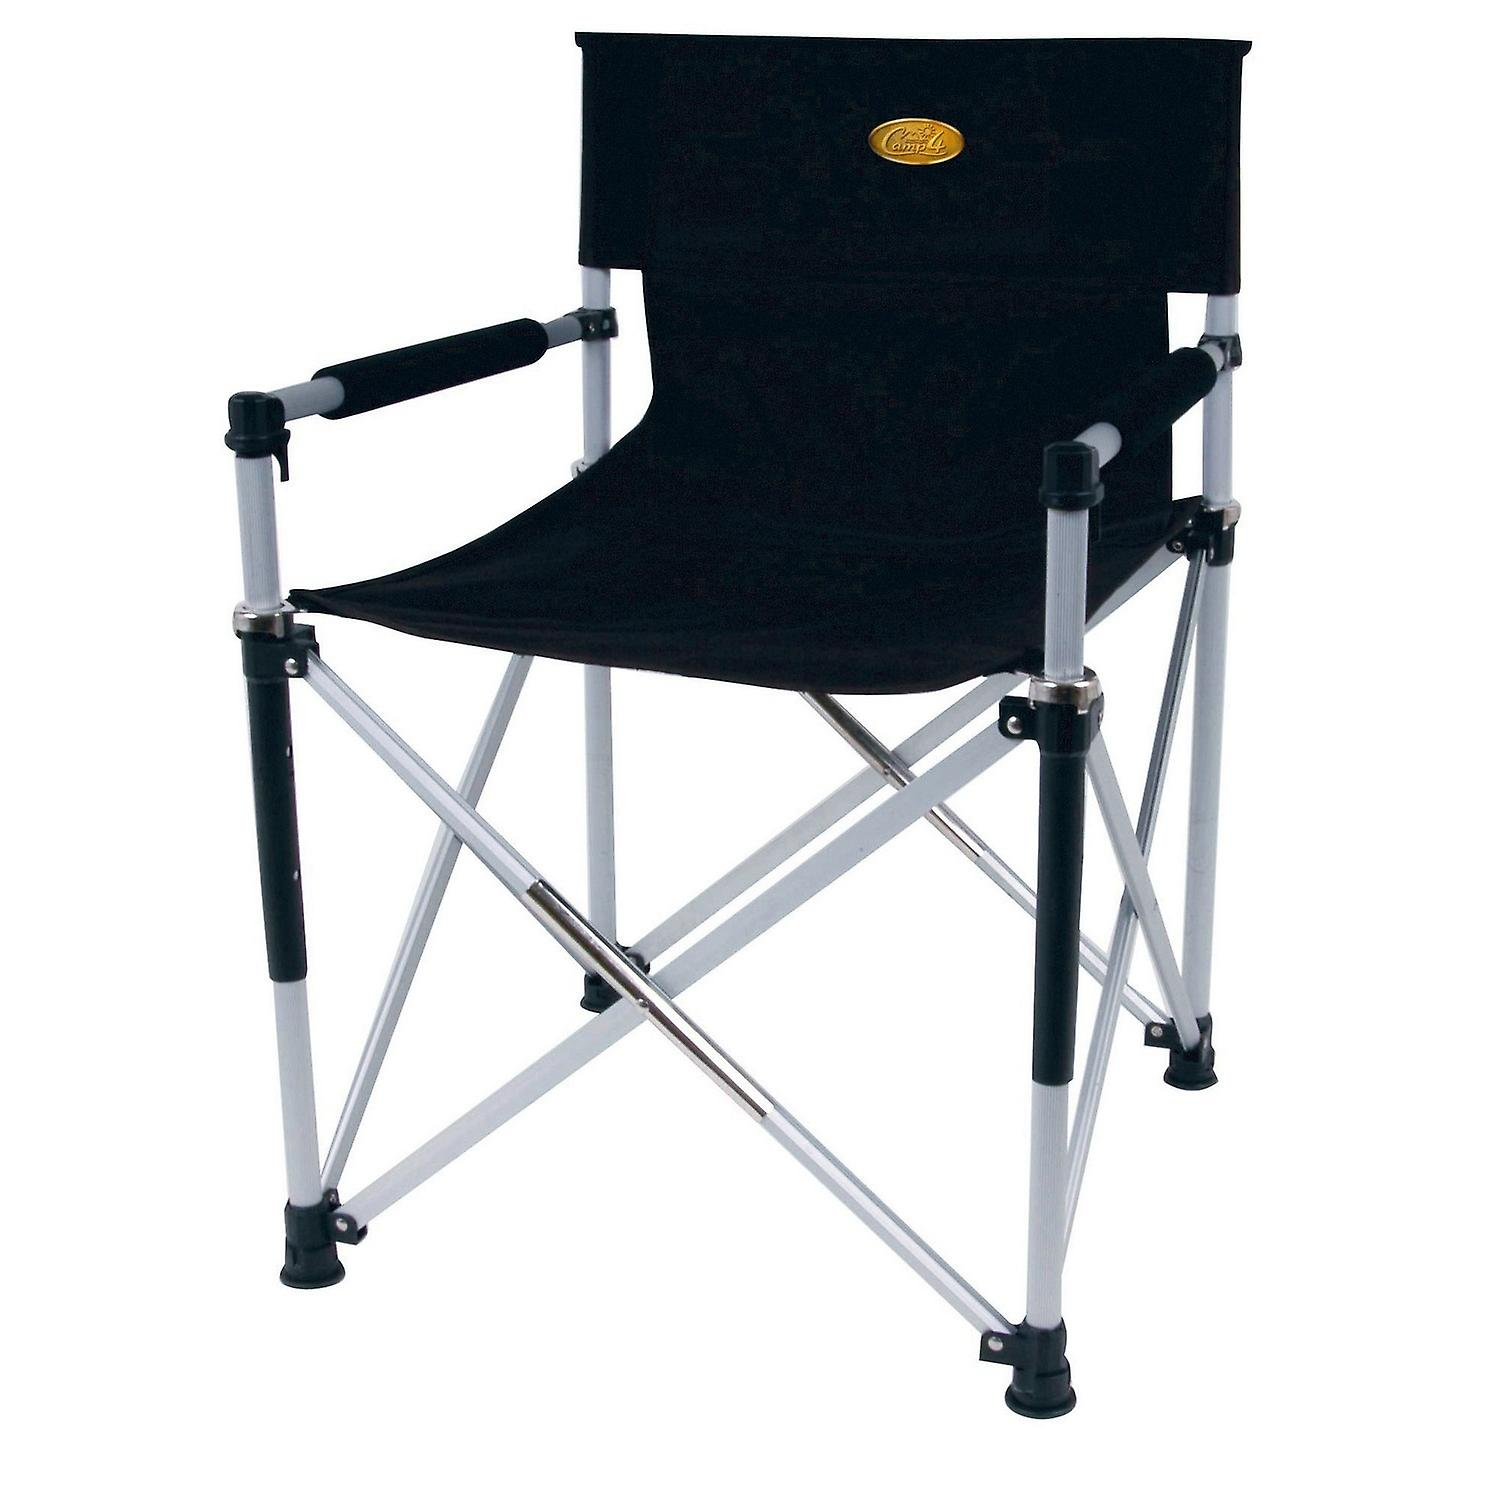 Camp 4 Toscana Luxus Directors Folding Camping Chair